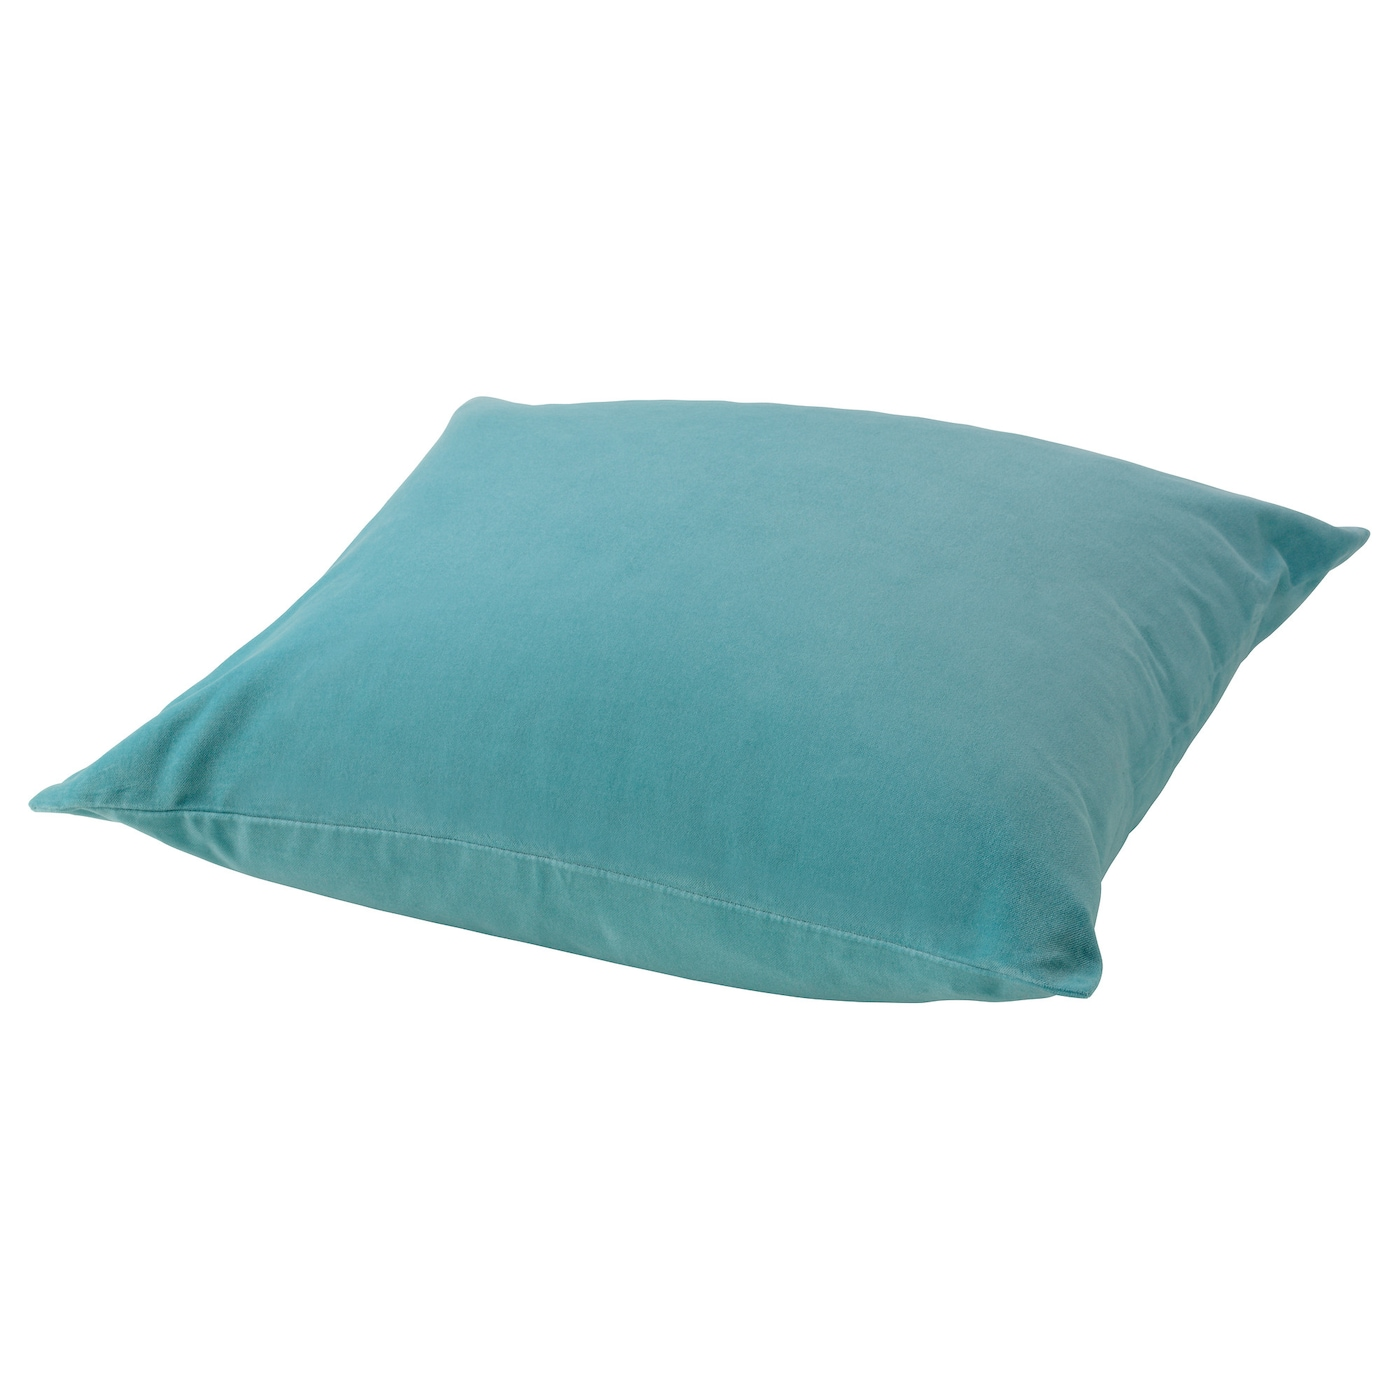 sanela cushion cover light turquoise 50x50 cm ikea. Black Bedroom Furniture Sets. Home Design Ideas